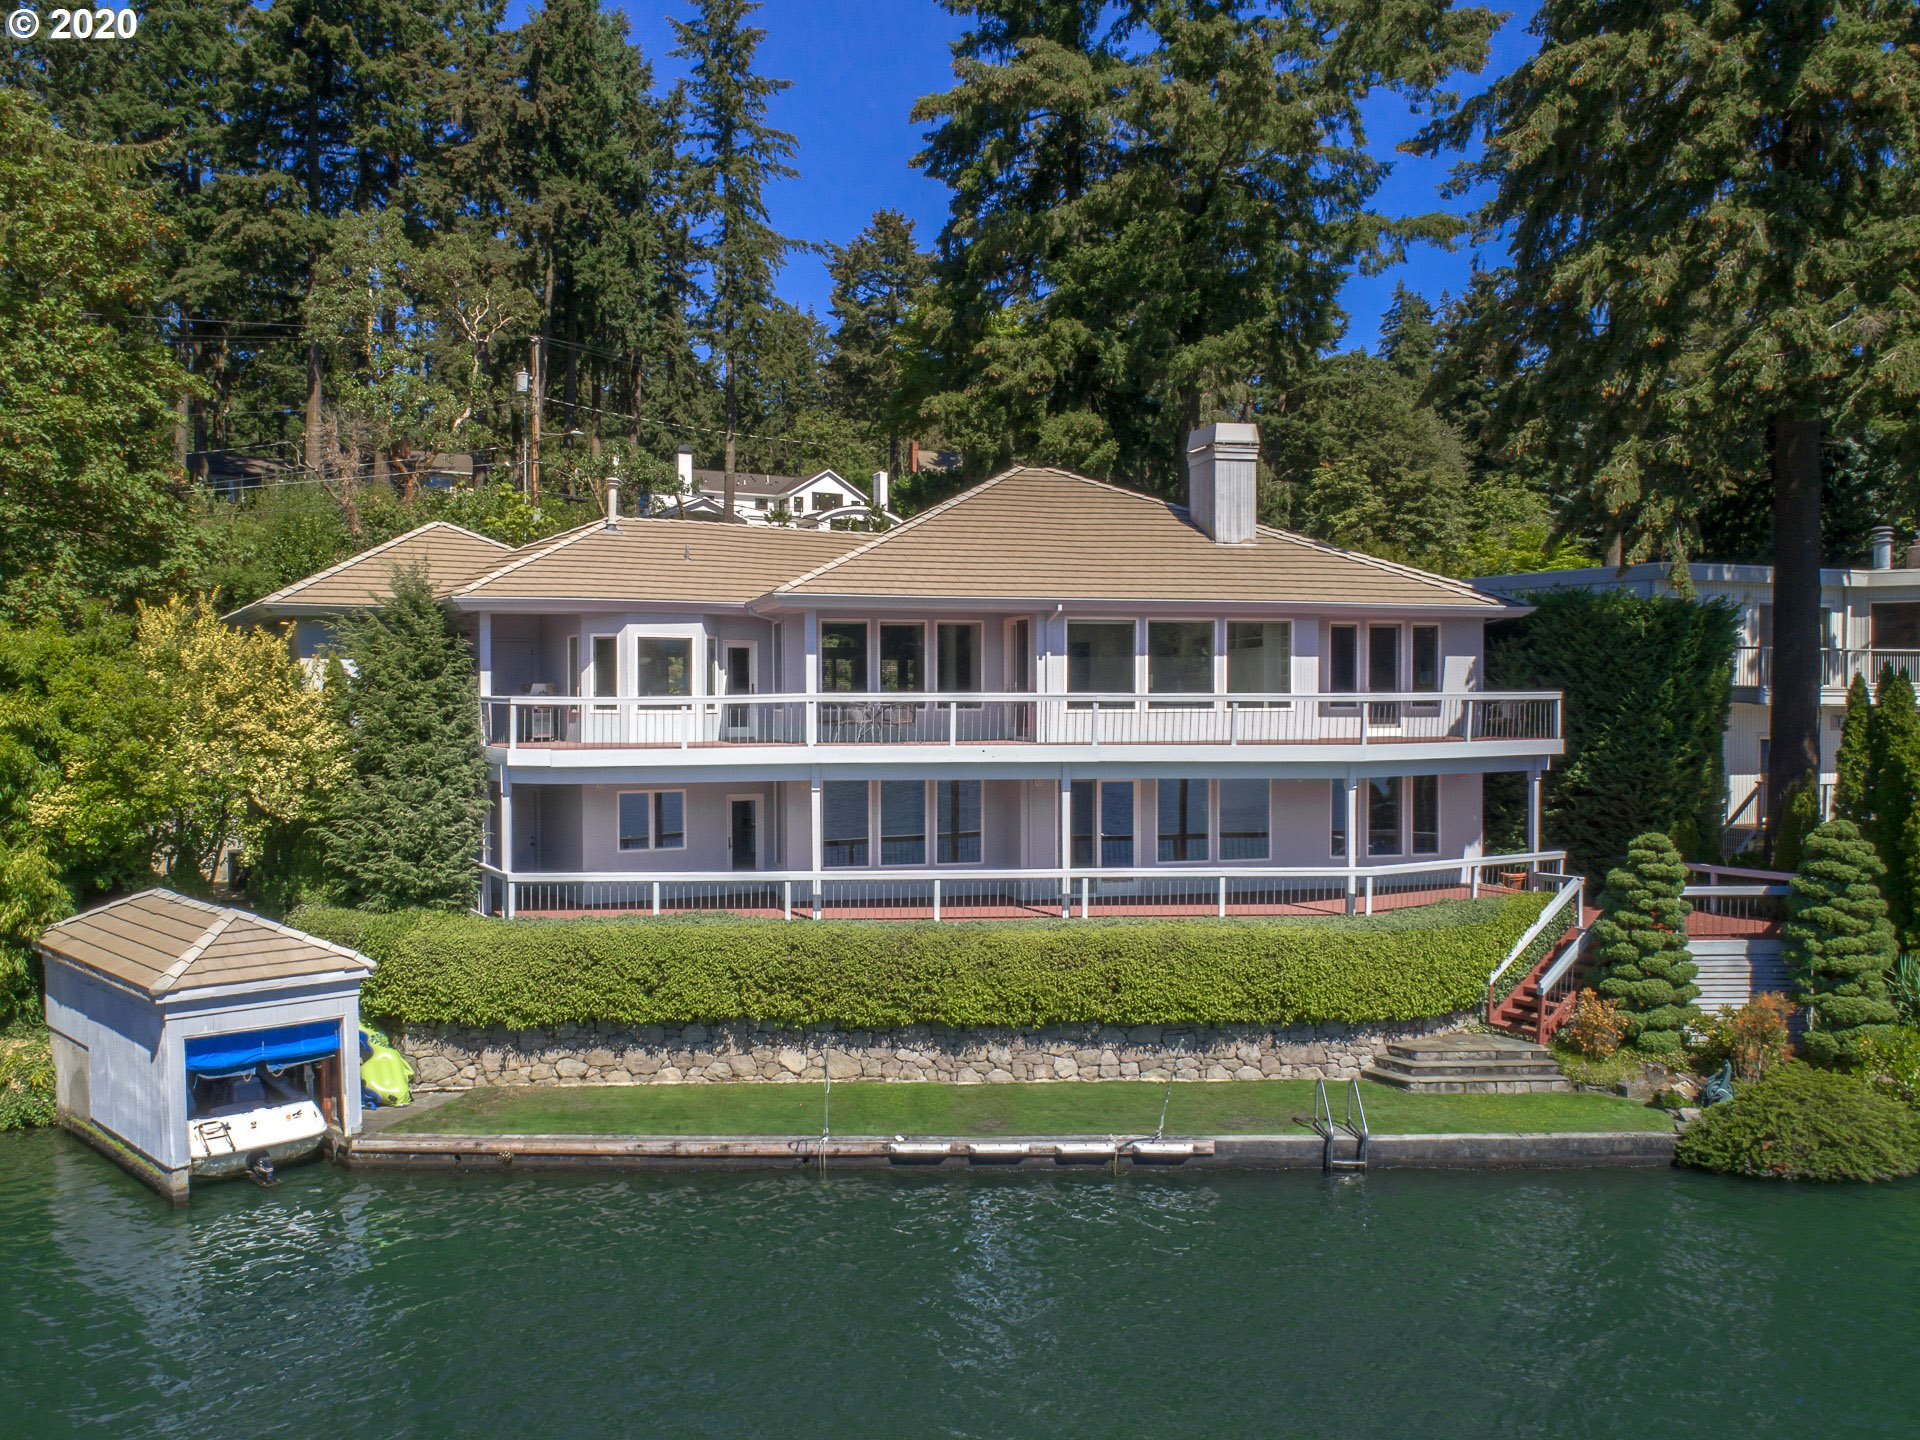 Custom built & boasting panoramic Oswego Lake views, private dock, boat house, walls of water-view windows & multi-level decks to take in the best of waterfront life. Relax & create your perfect, private world w/expansive great room & dining, kitchen w/wet bar & 2nd dining, main level master suite, lower level family rm, bedrooms & lake-view office. Lrg utility, extra storage, classic details & exclusive destination swimming/boat/water sports dock just minutes from vibrant downtown amenities!